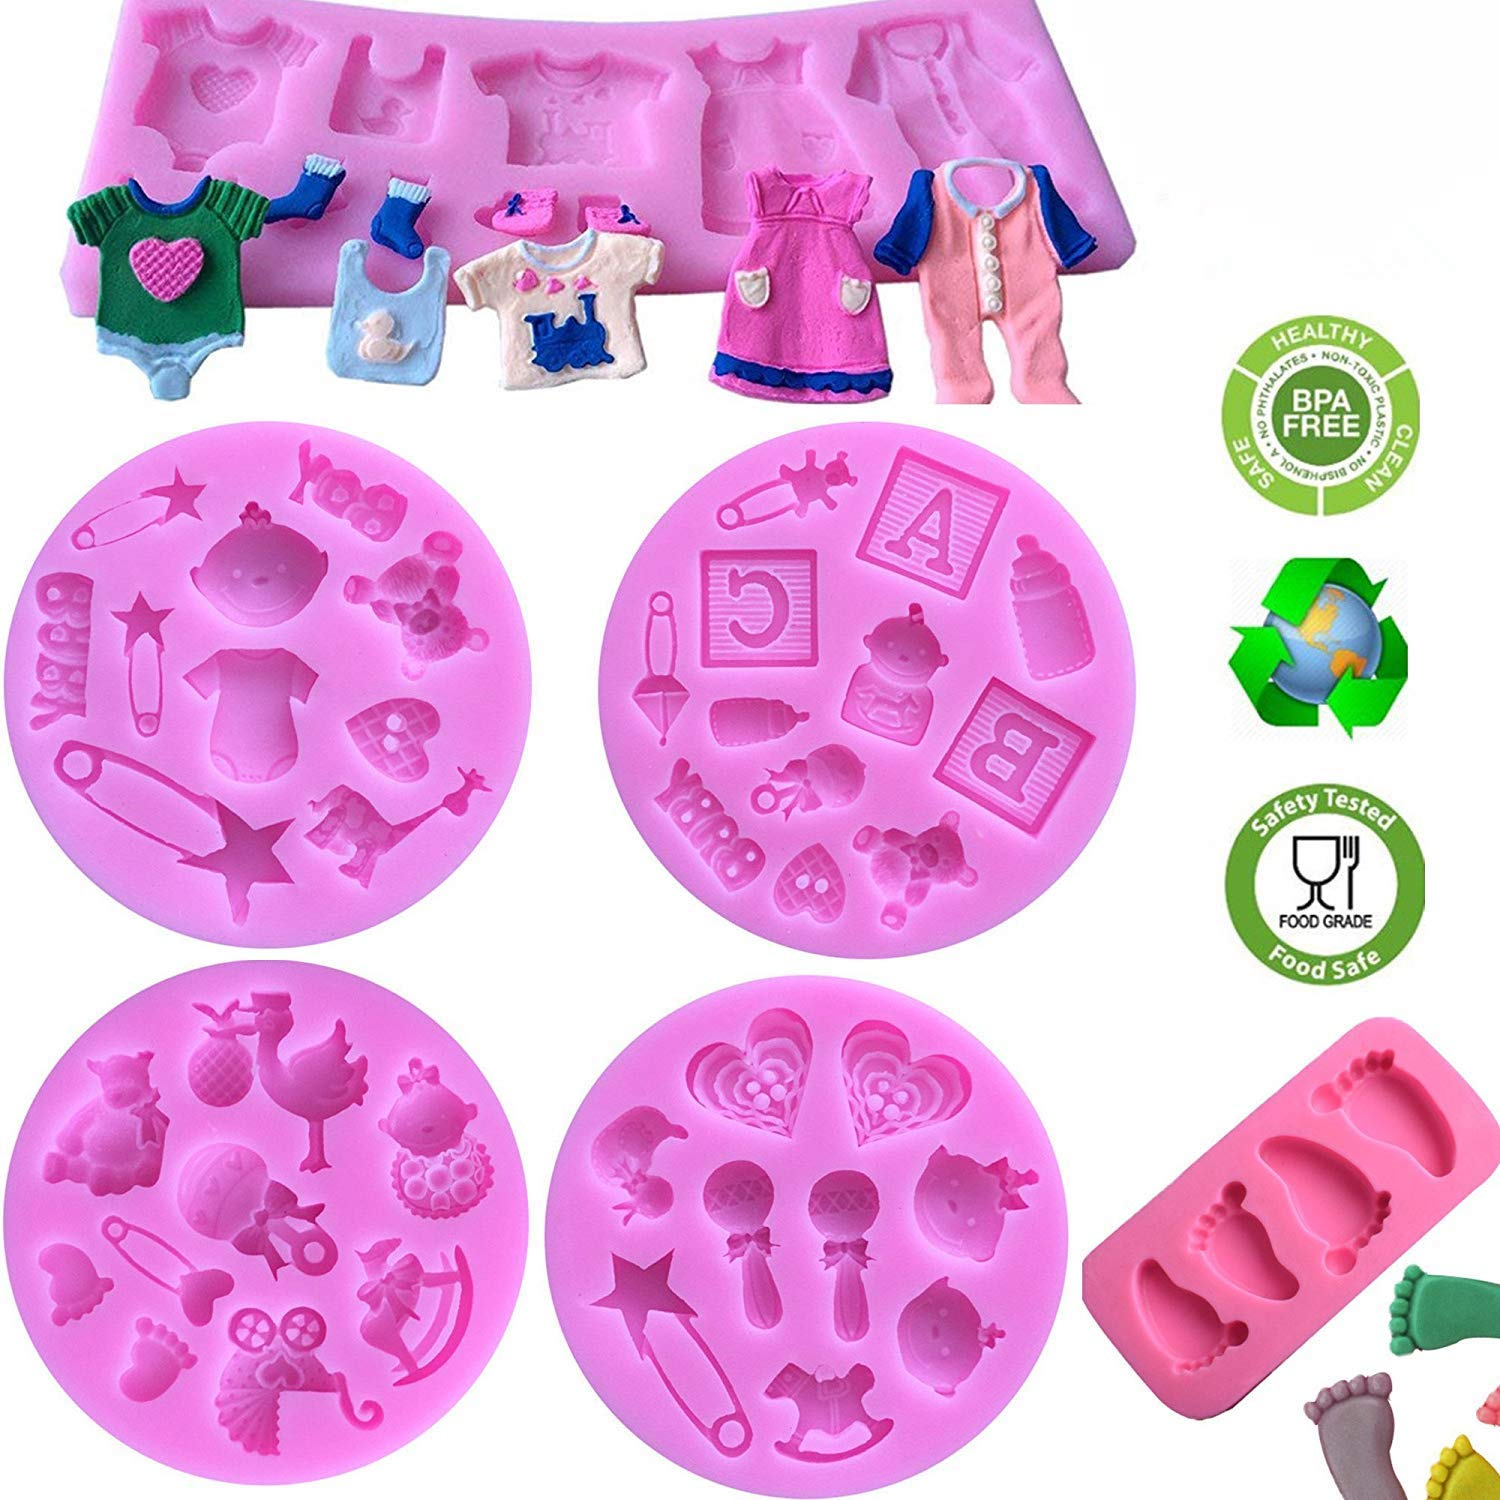 Cute Baby Silicone Fondant Cake Mold Kitchen Baking Mold Cake Decorating Moulds Modeling Tools,Gummy Sugar Chocolate Candy Cupcake Mold(6 PACK) by sunnylifyau